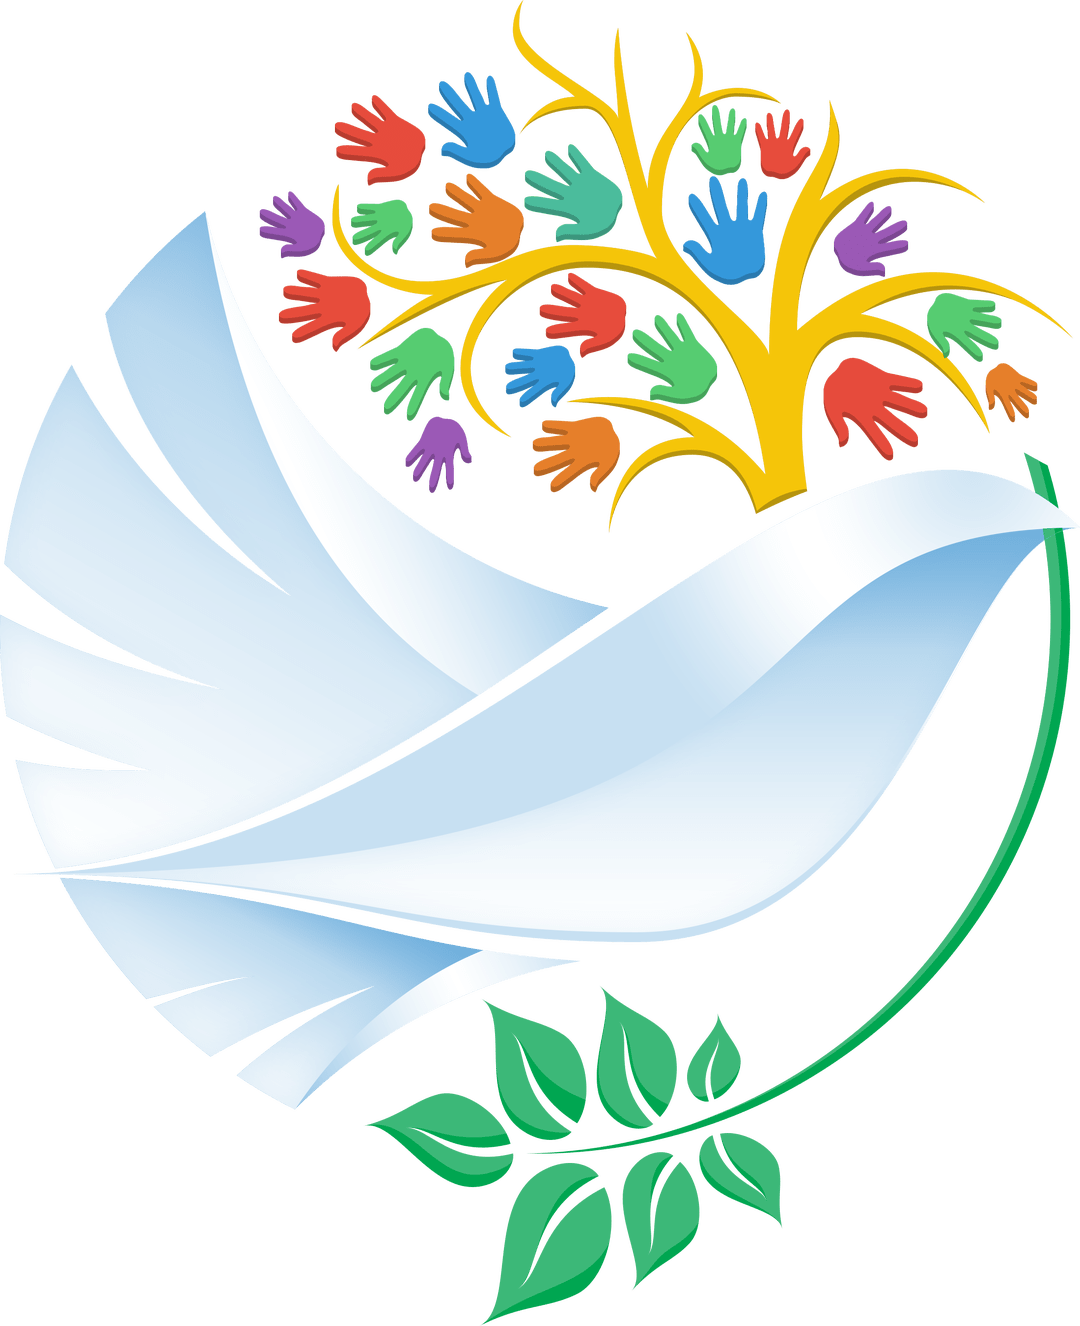 Community clipart peaceful community. Who we are asean